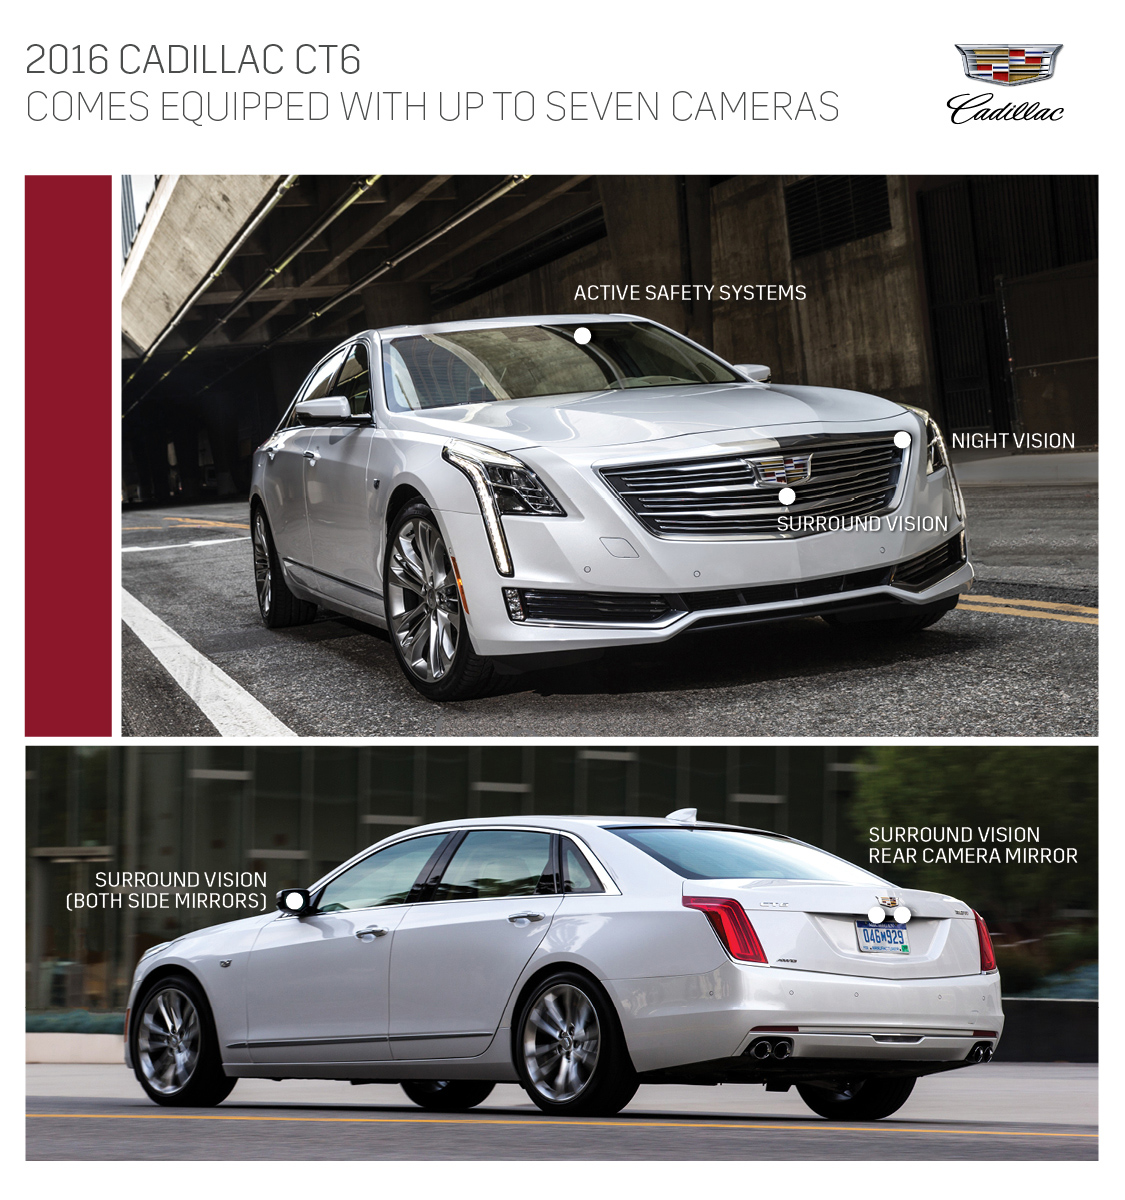 Cadillac Ct6 Features Industry First Surround View Video Recording